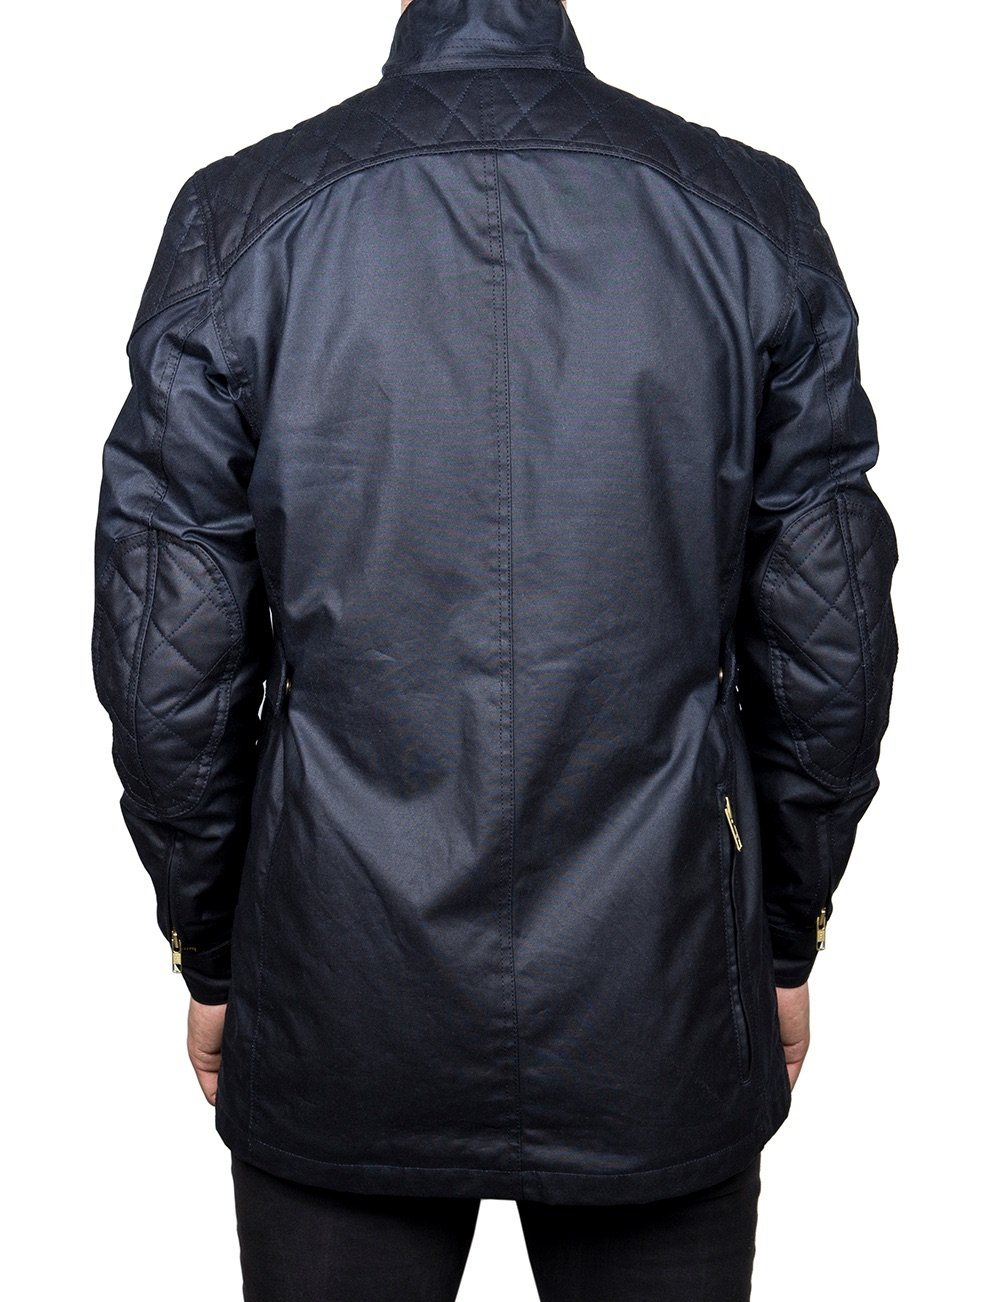 Malle_Expedition_Jacket2